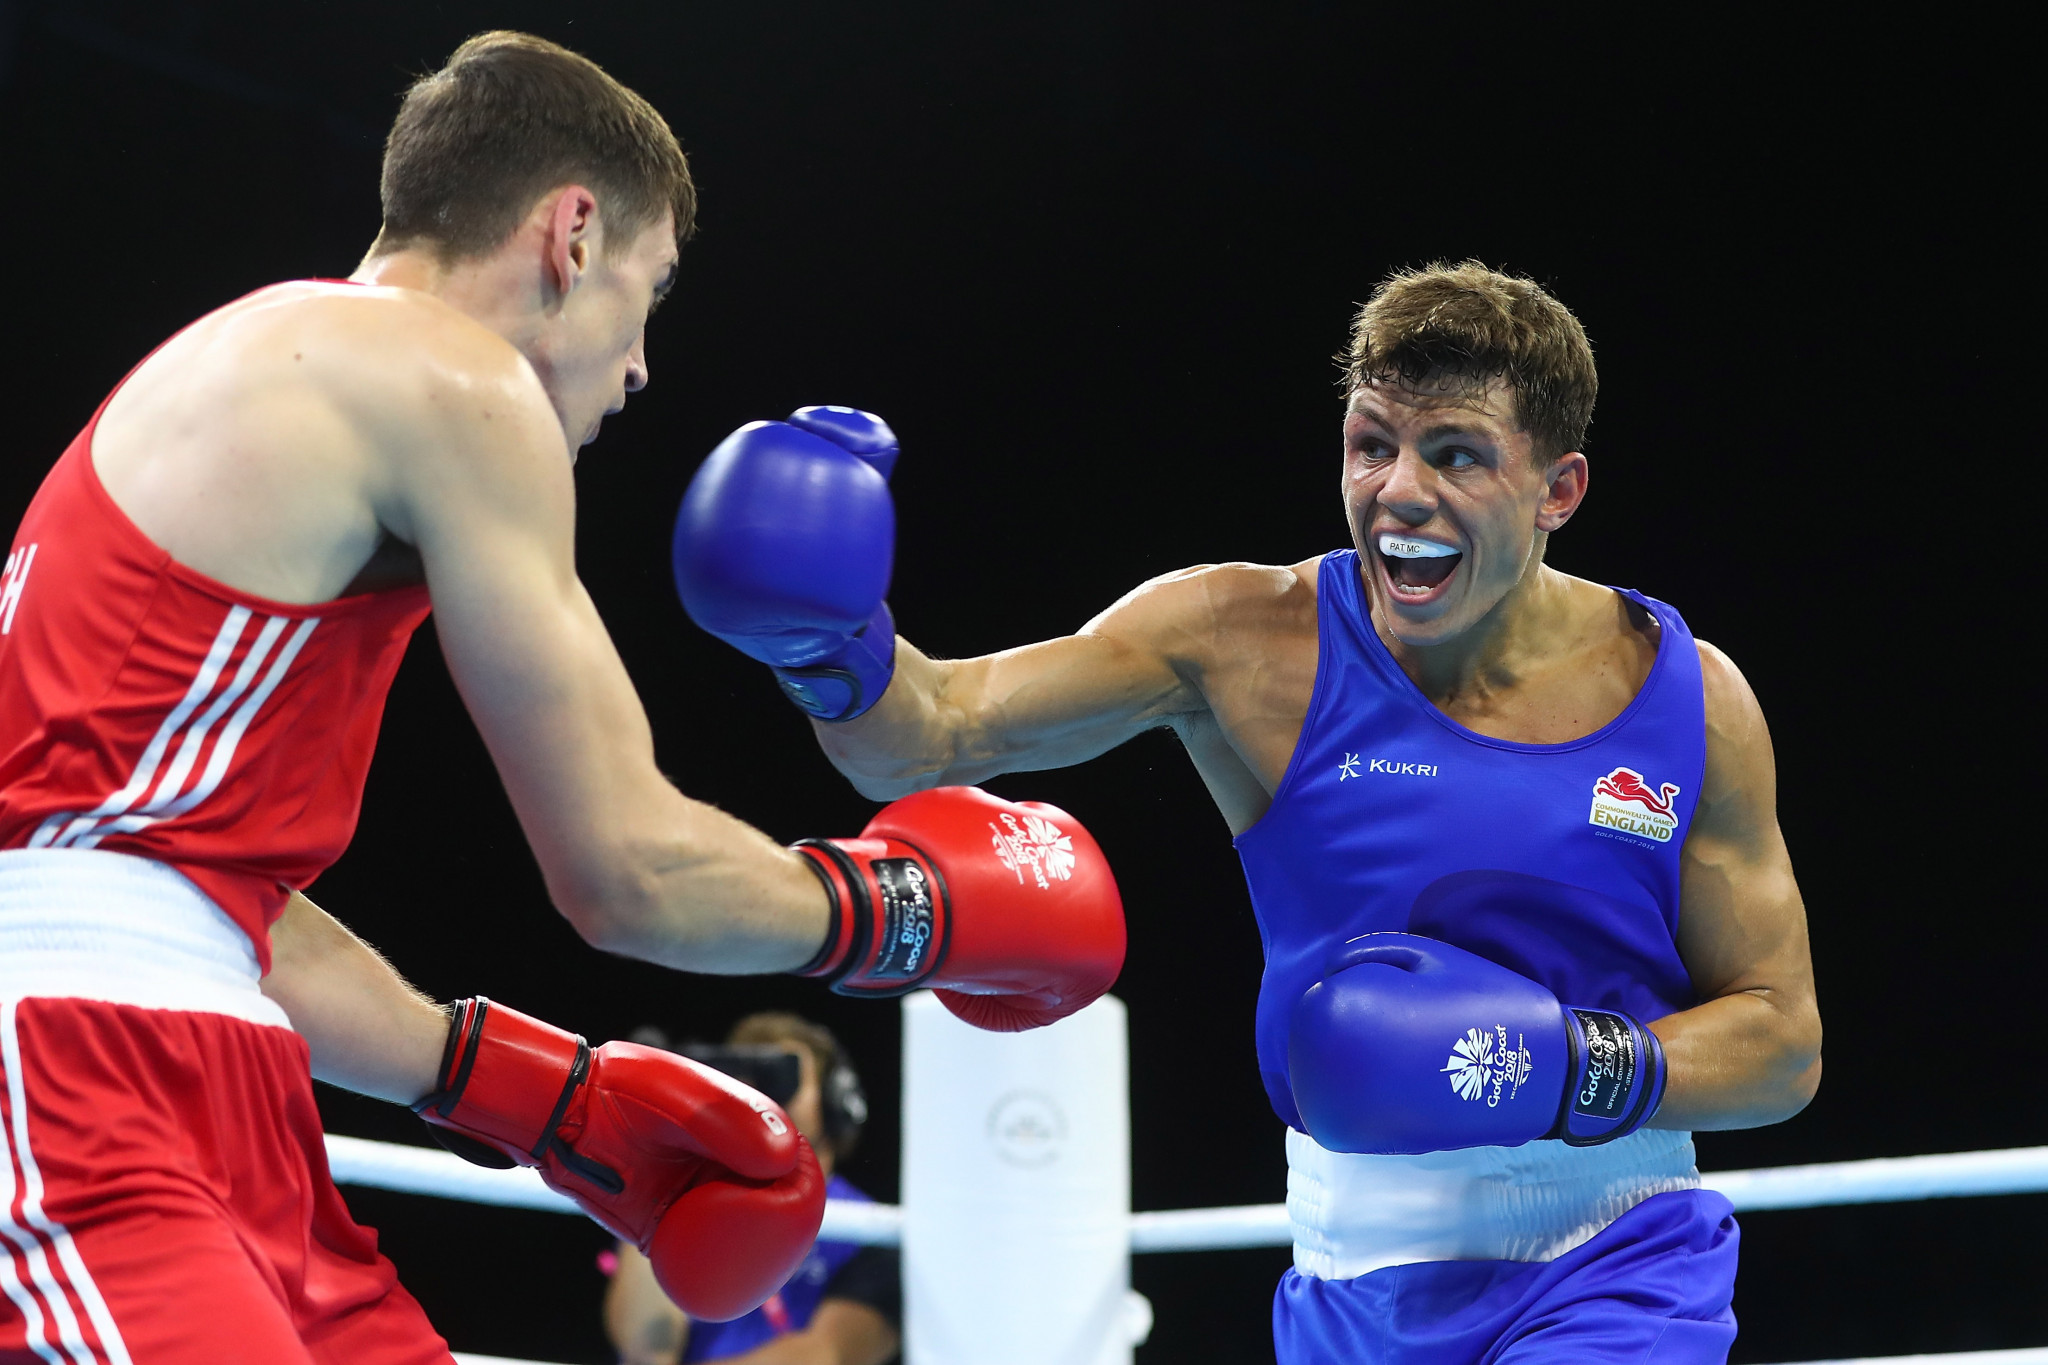 British top-ranked trio one win from Tokyo 2020 at European boxing qualifier